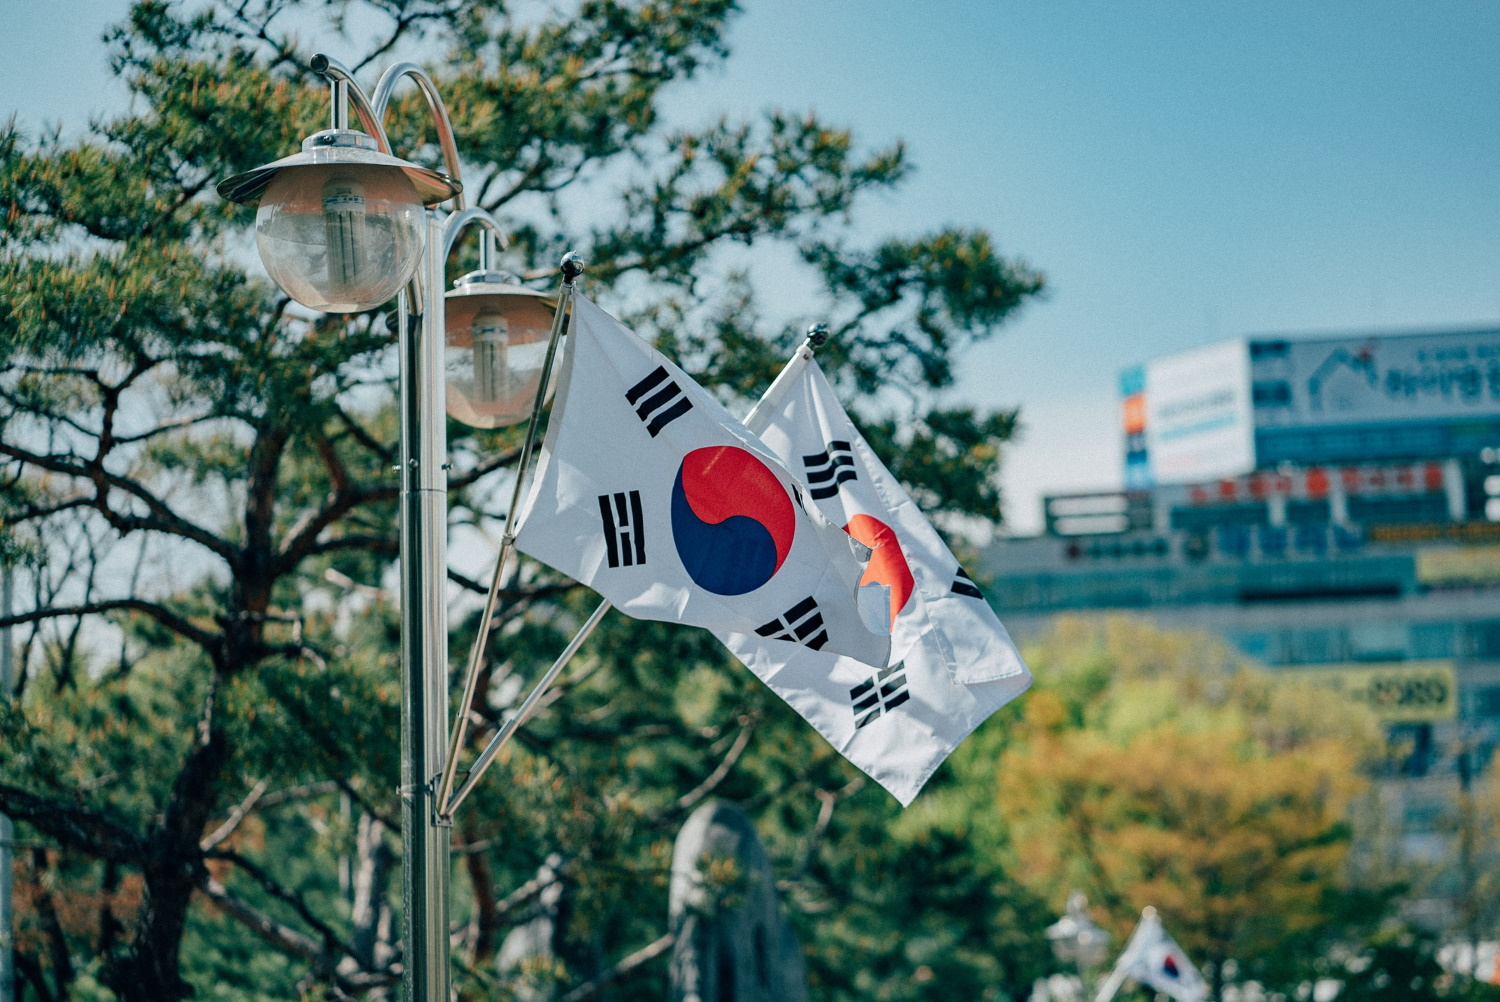 Solana Launches $20M Fund to Advance Ecosystem in Korea